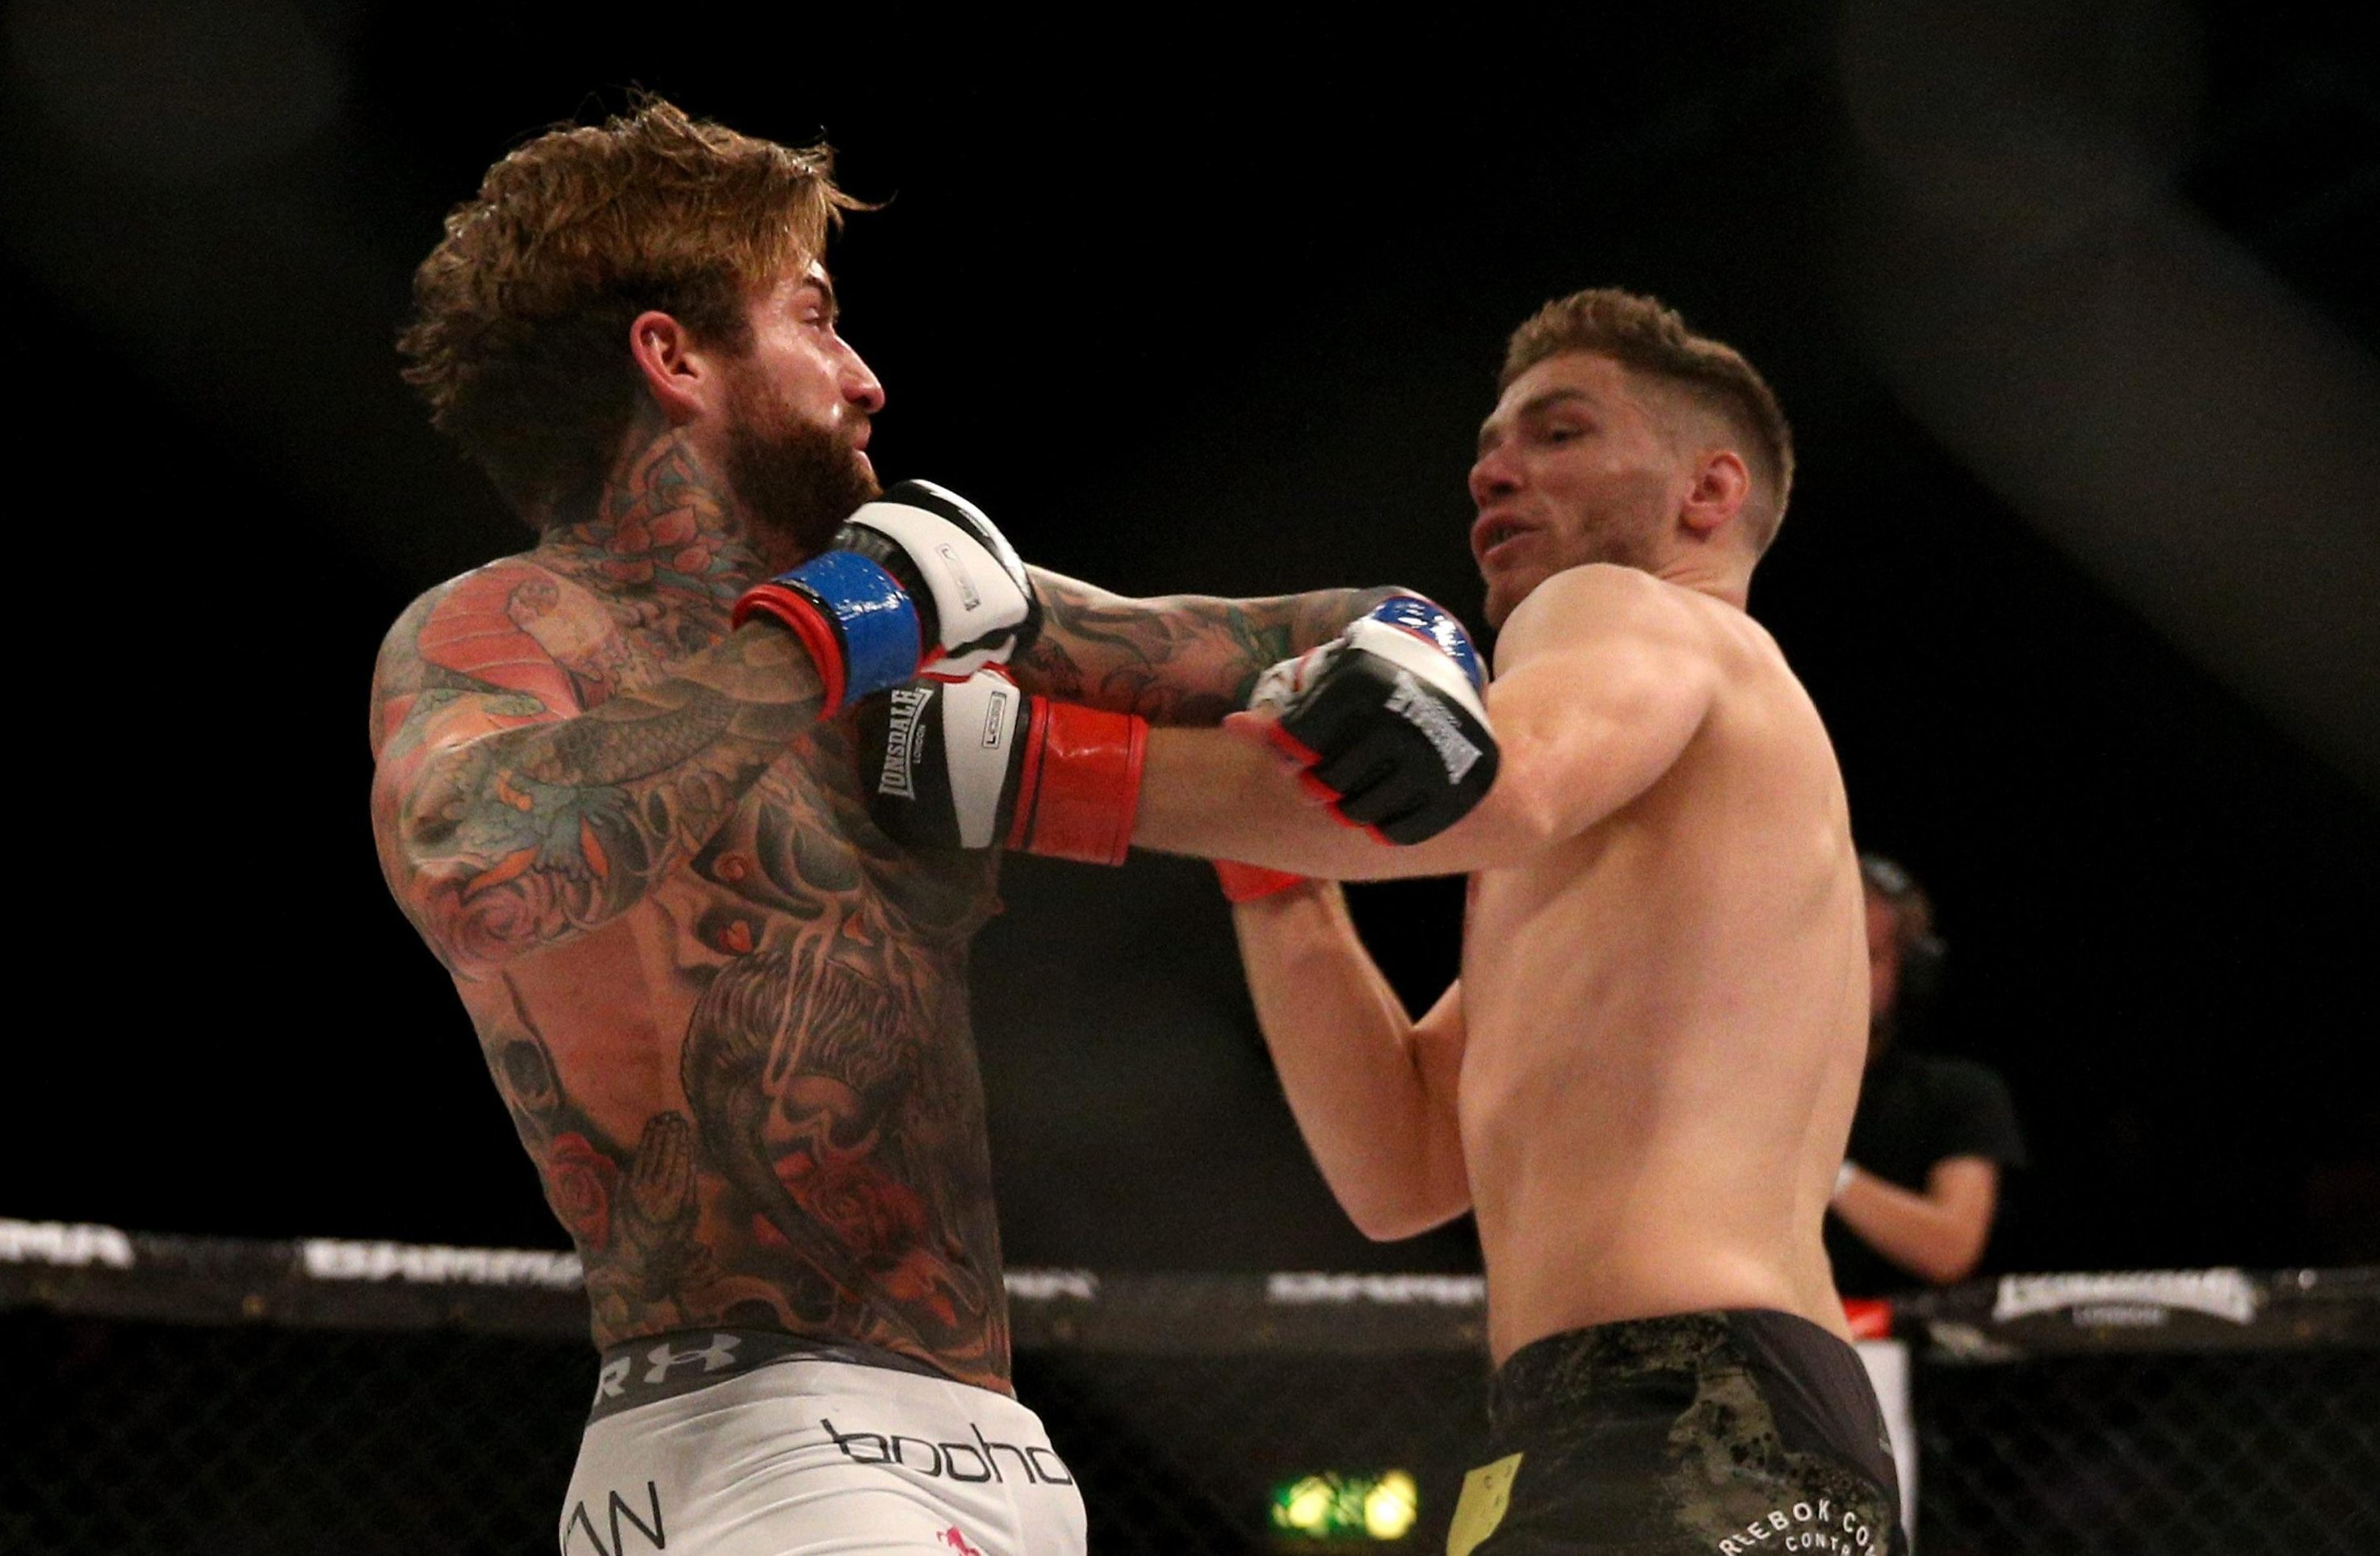 Aaron Chalmers in action against Alex Thompson at BAMMA 31 last September